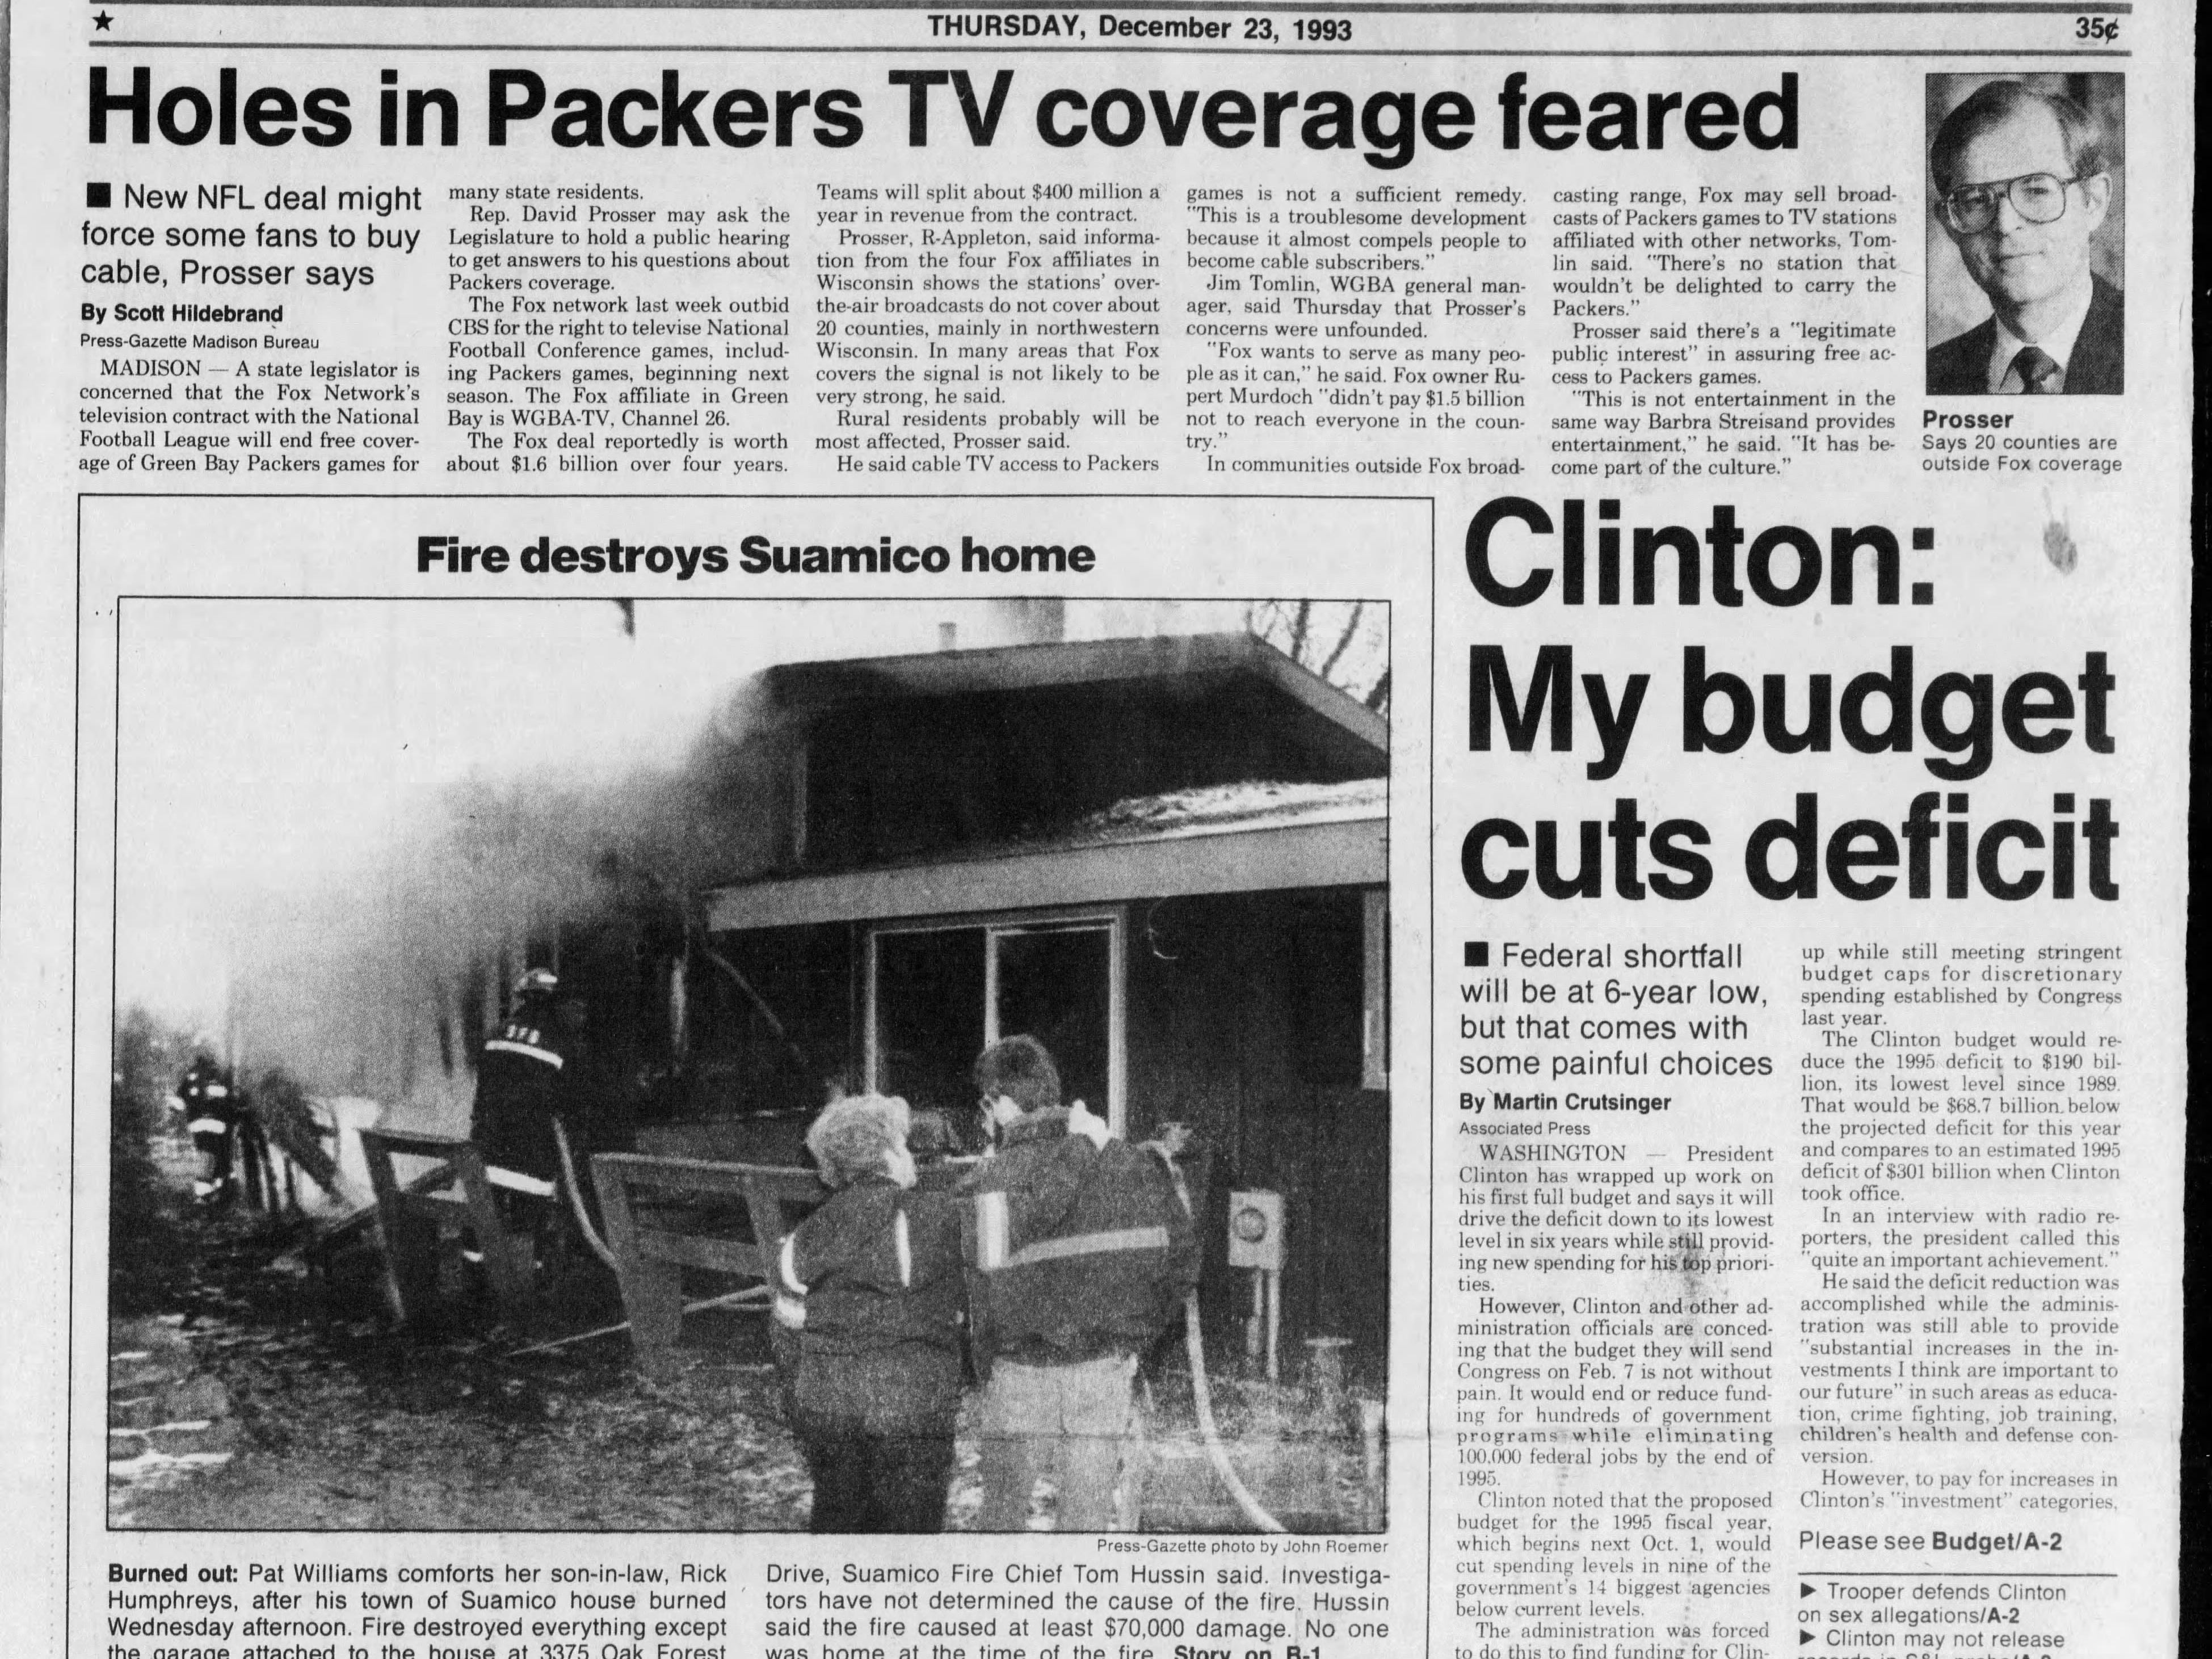 Today in History: Dec. 23, 1993